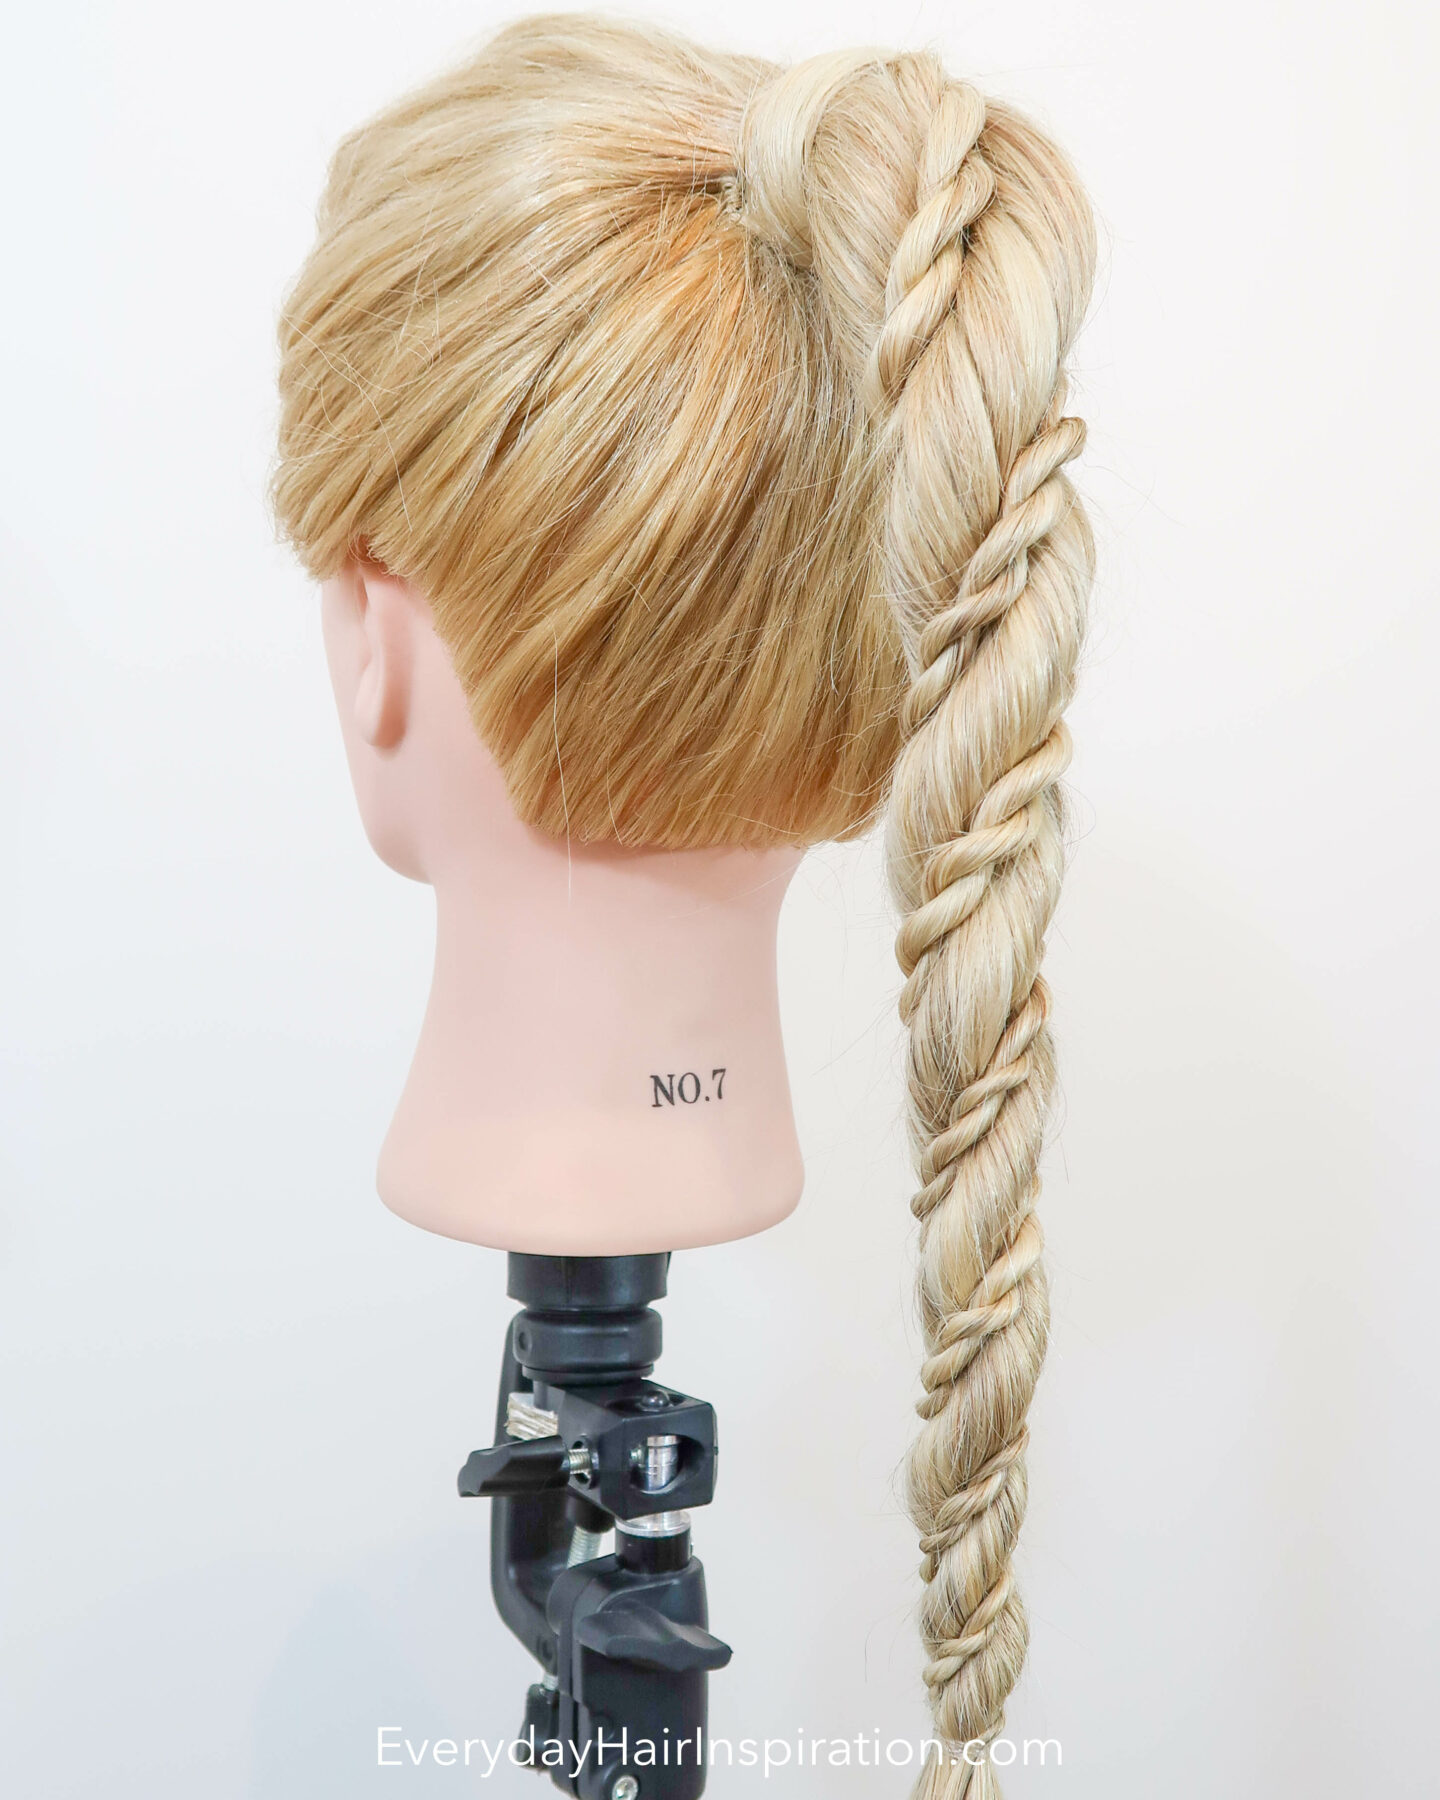 Blonde hairdresser doll seen from an angle, with a high ponytail in the hair. The ponytail is a rope braid, with 2 small rope braids wrapped around the big rope braid.